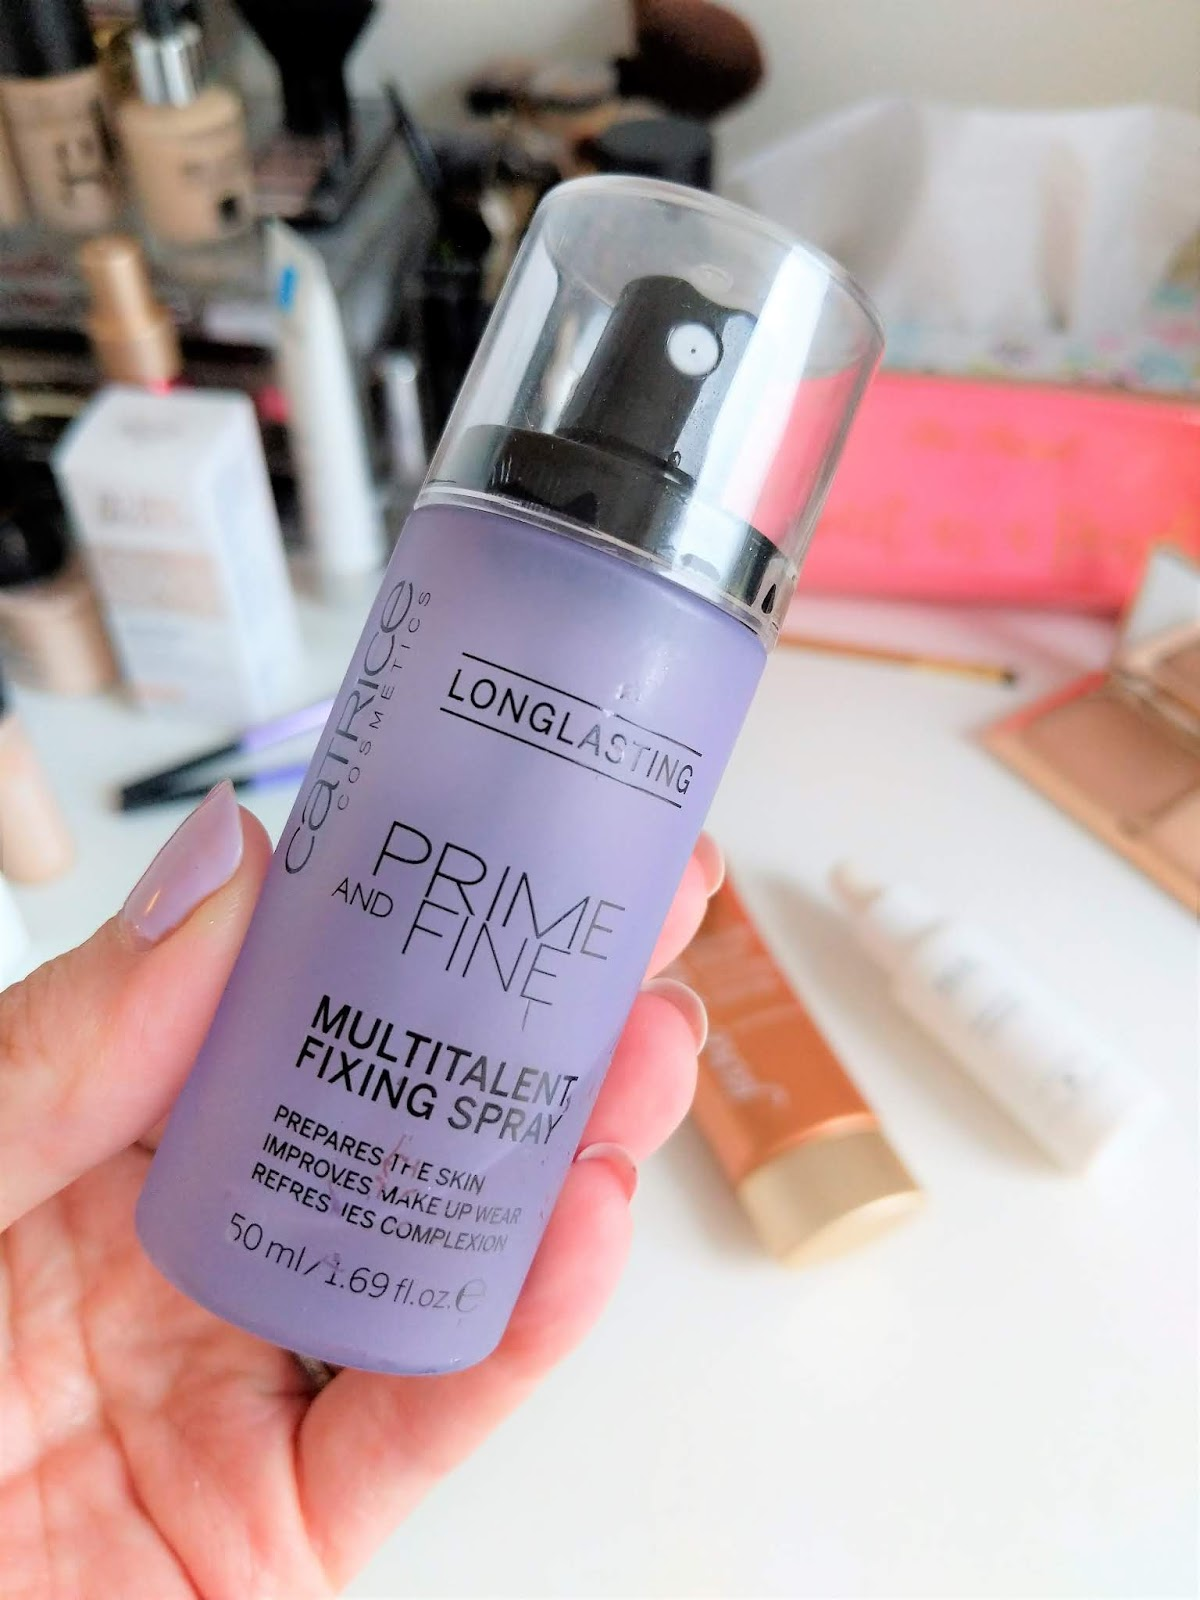 Catrice_Cosmetics_Prime_and_Fine_Fixing_Spray